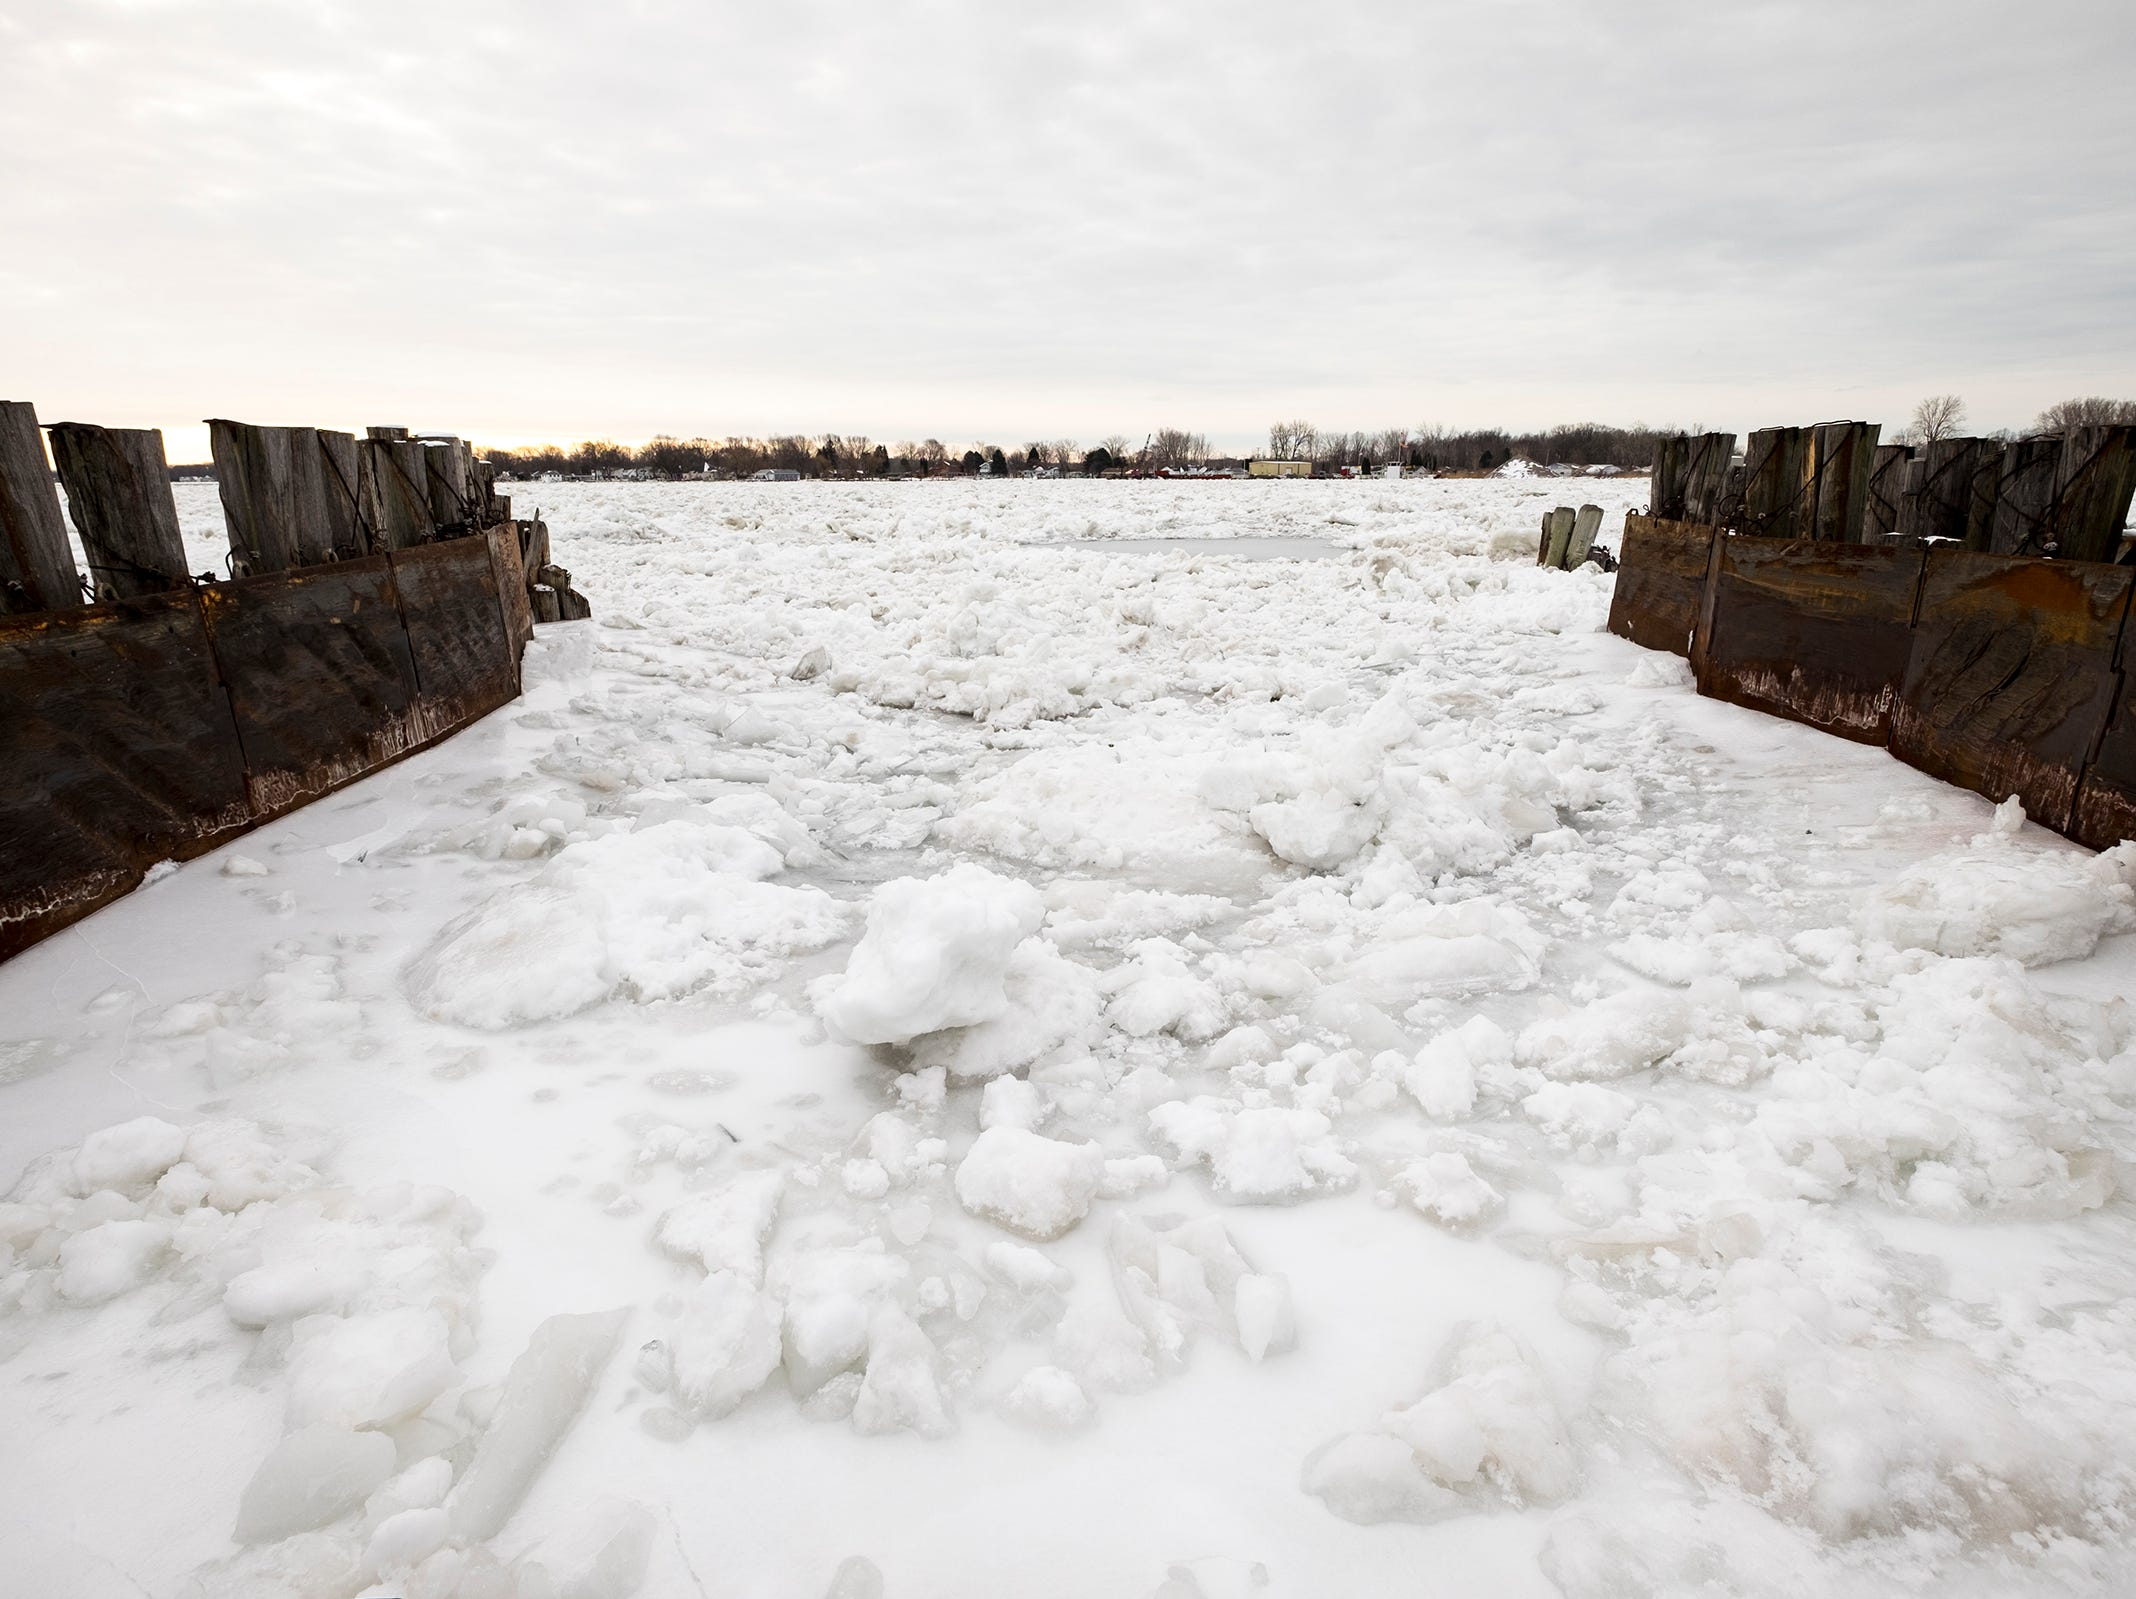 The slips at Champions Auto Ferry in Algonac are filled with ice Tuesday, Jan. 22, 2019. The ferry isn't operating due to ice on the river.